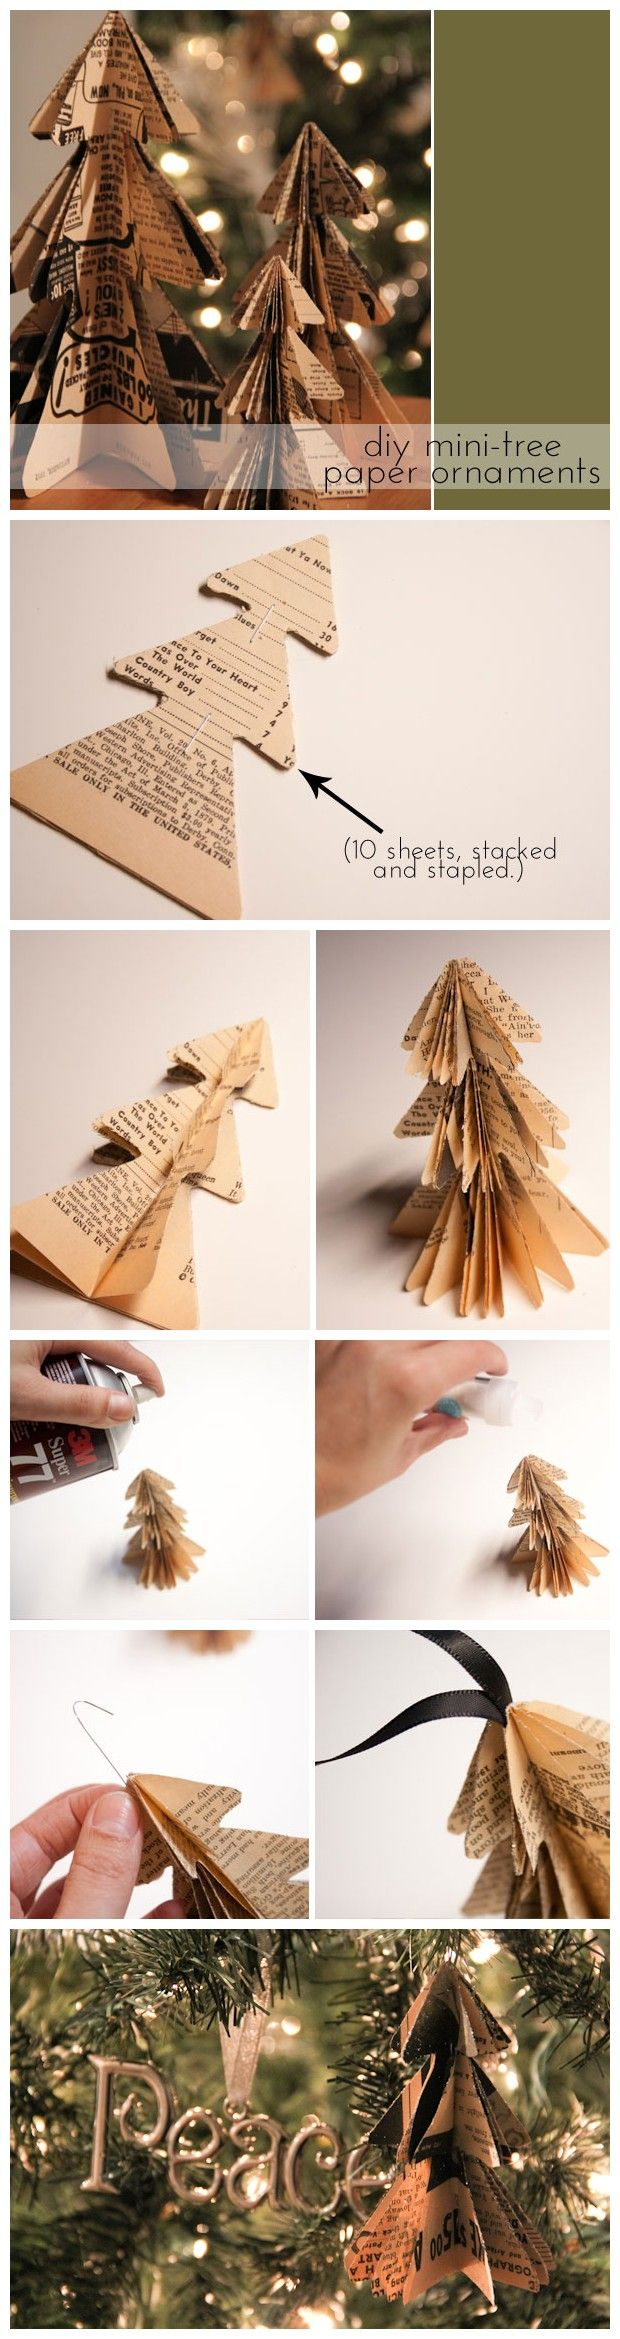 recycled book ornaments  >> Yes! This *will* be happening this year!